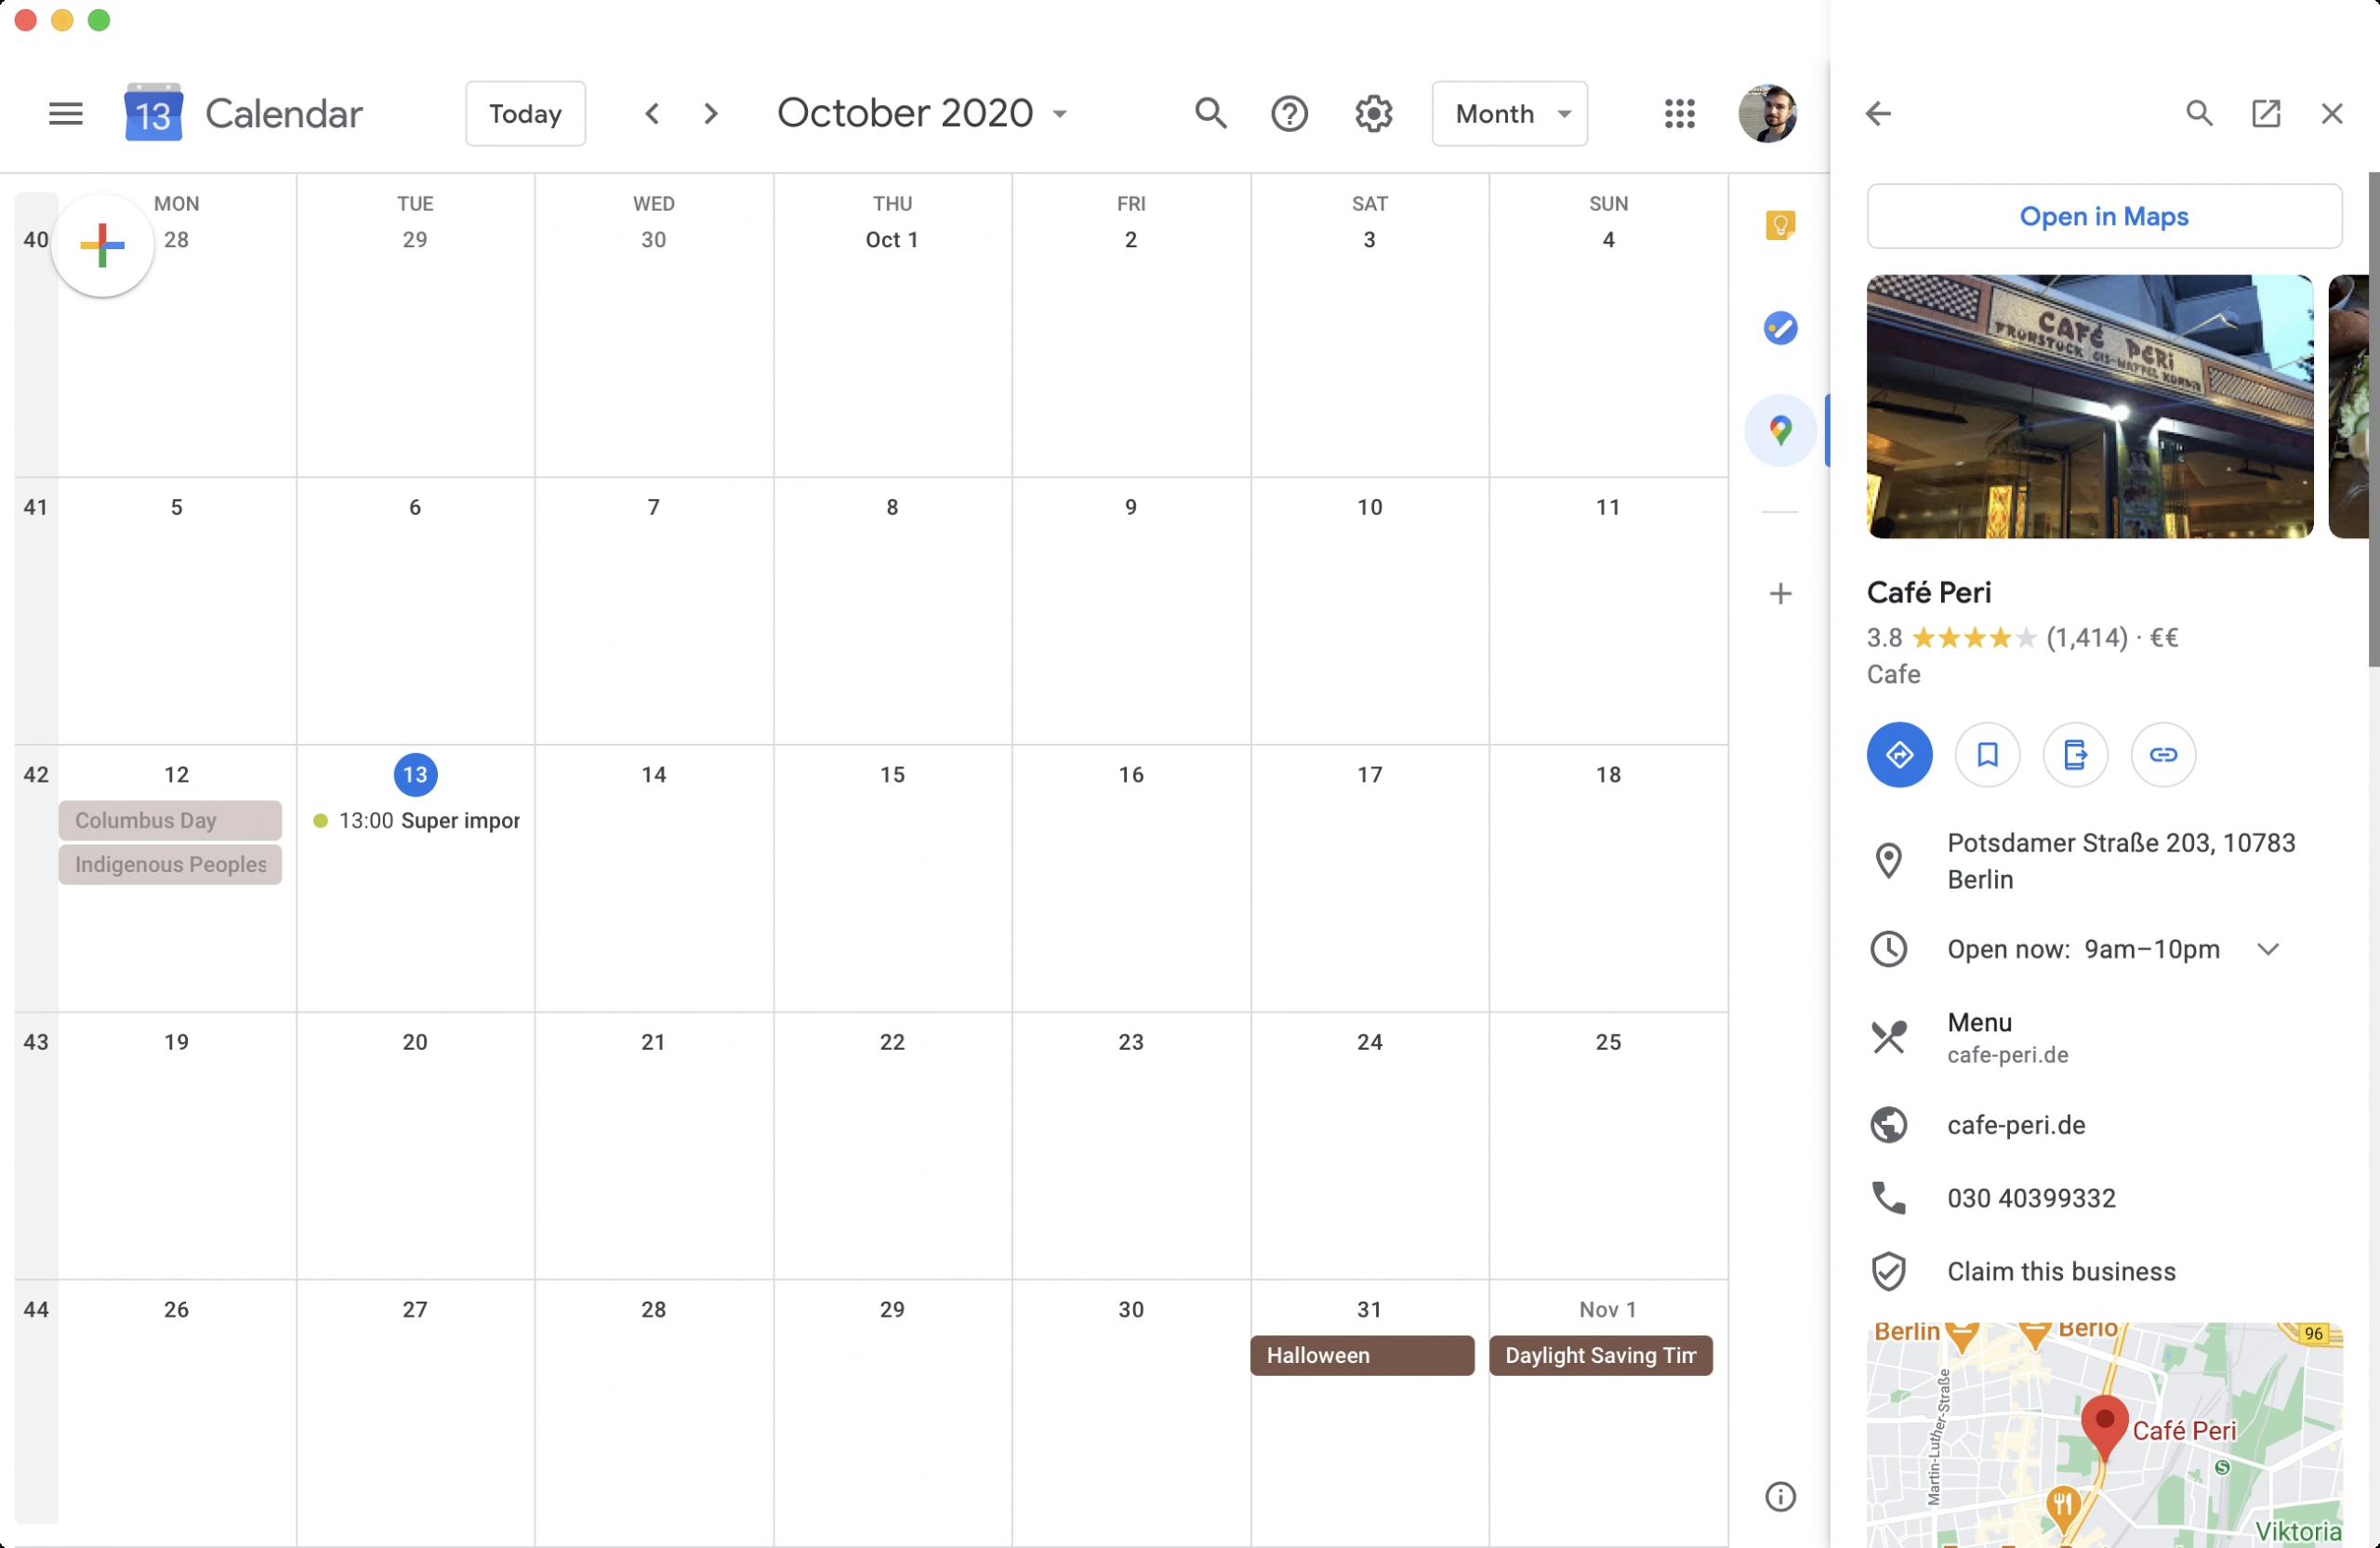 Google Calendar Adds Miniature Version Of Maps To Its